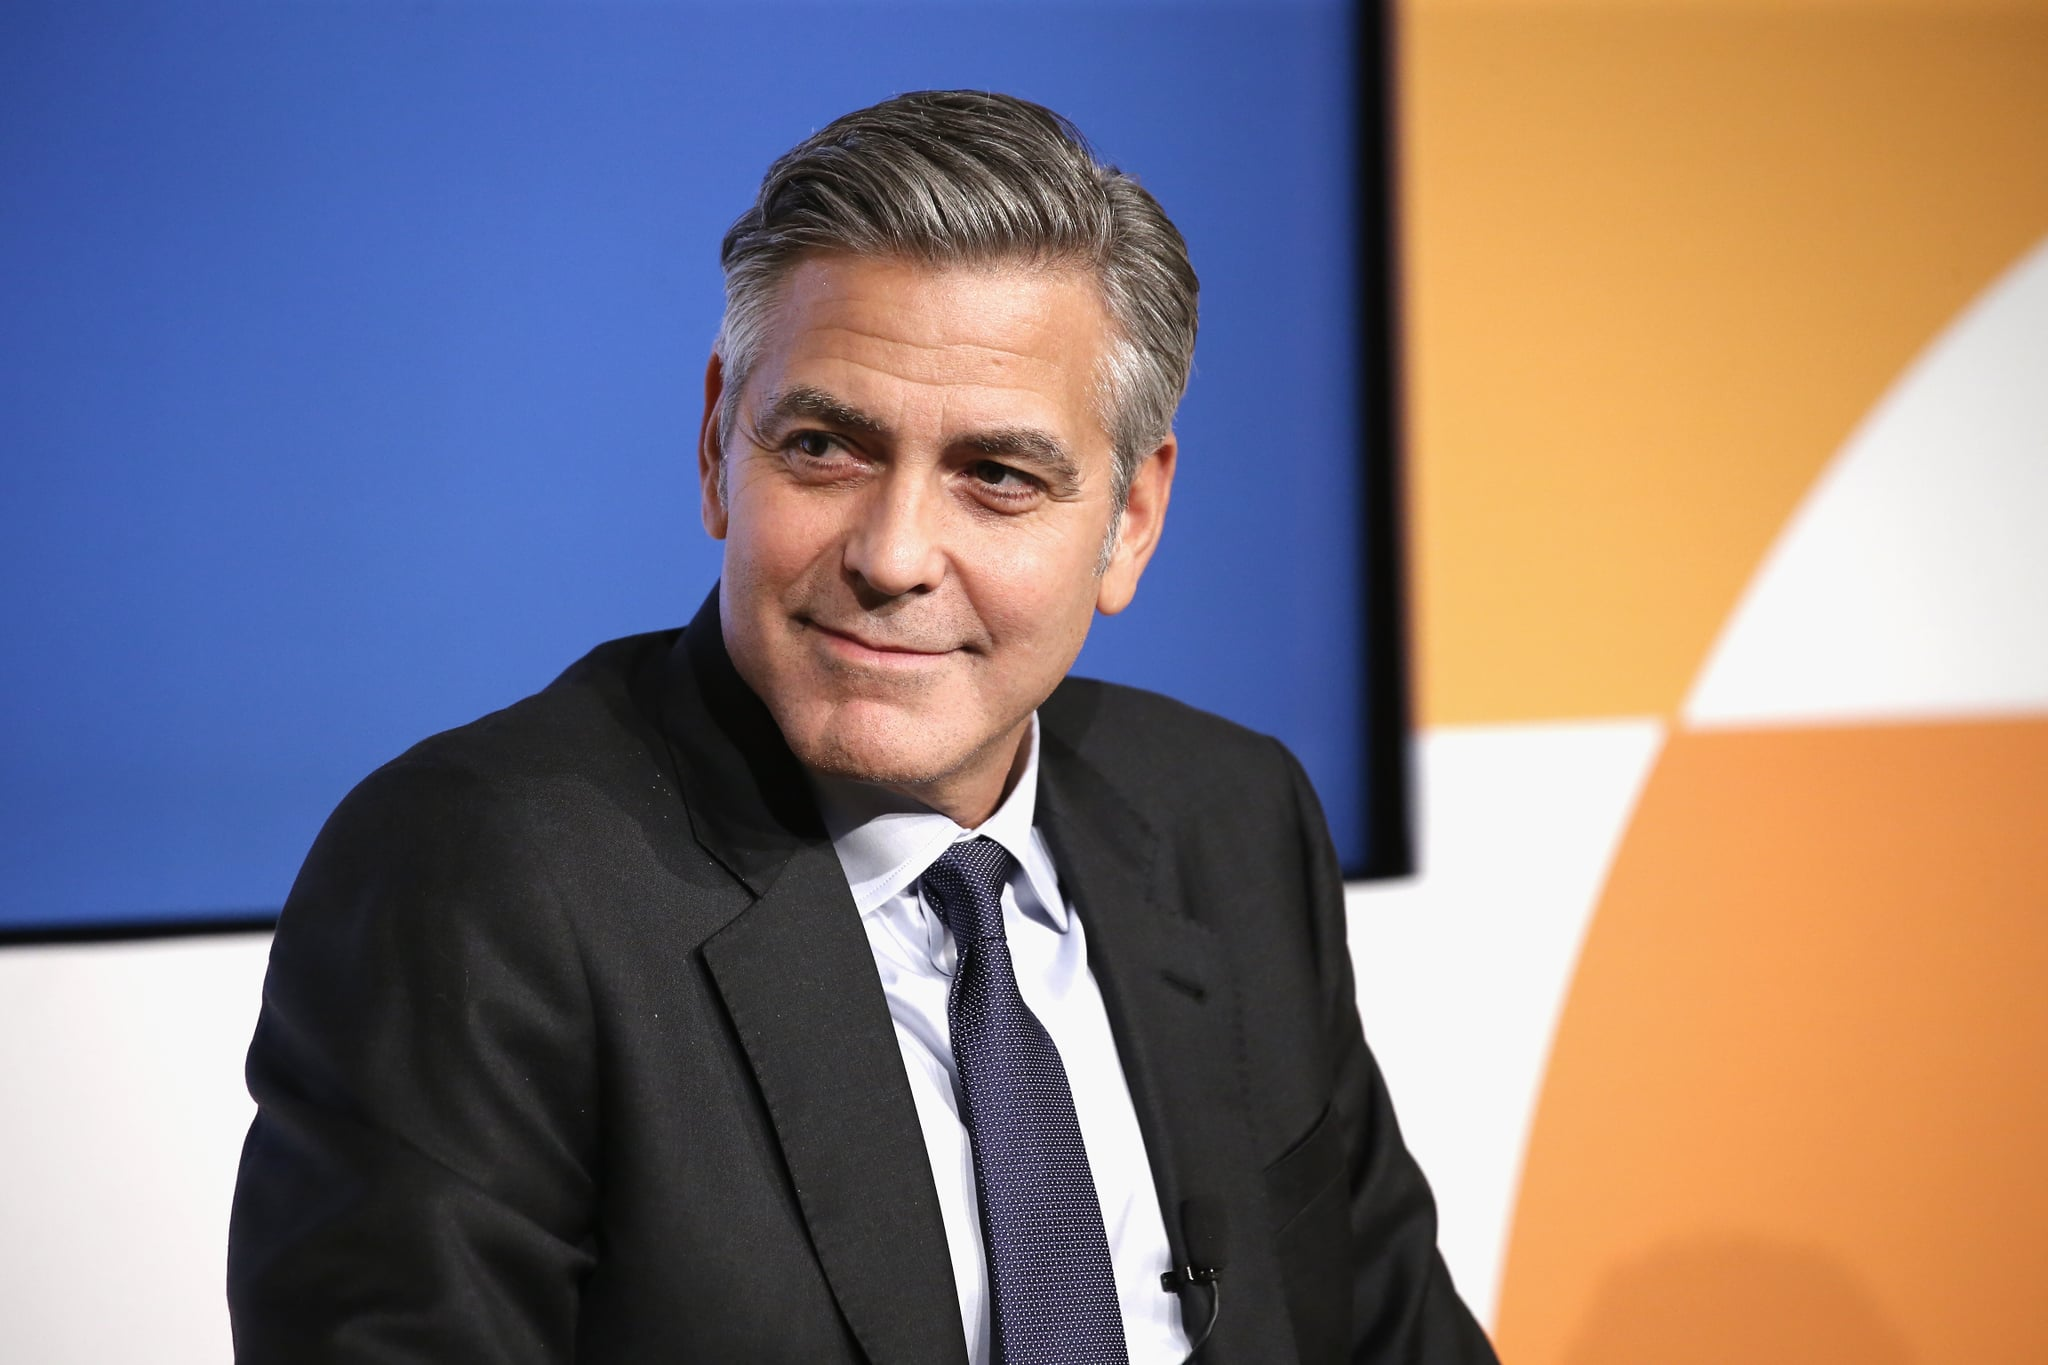 Catch-22 series in the works from George Clooney